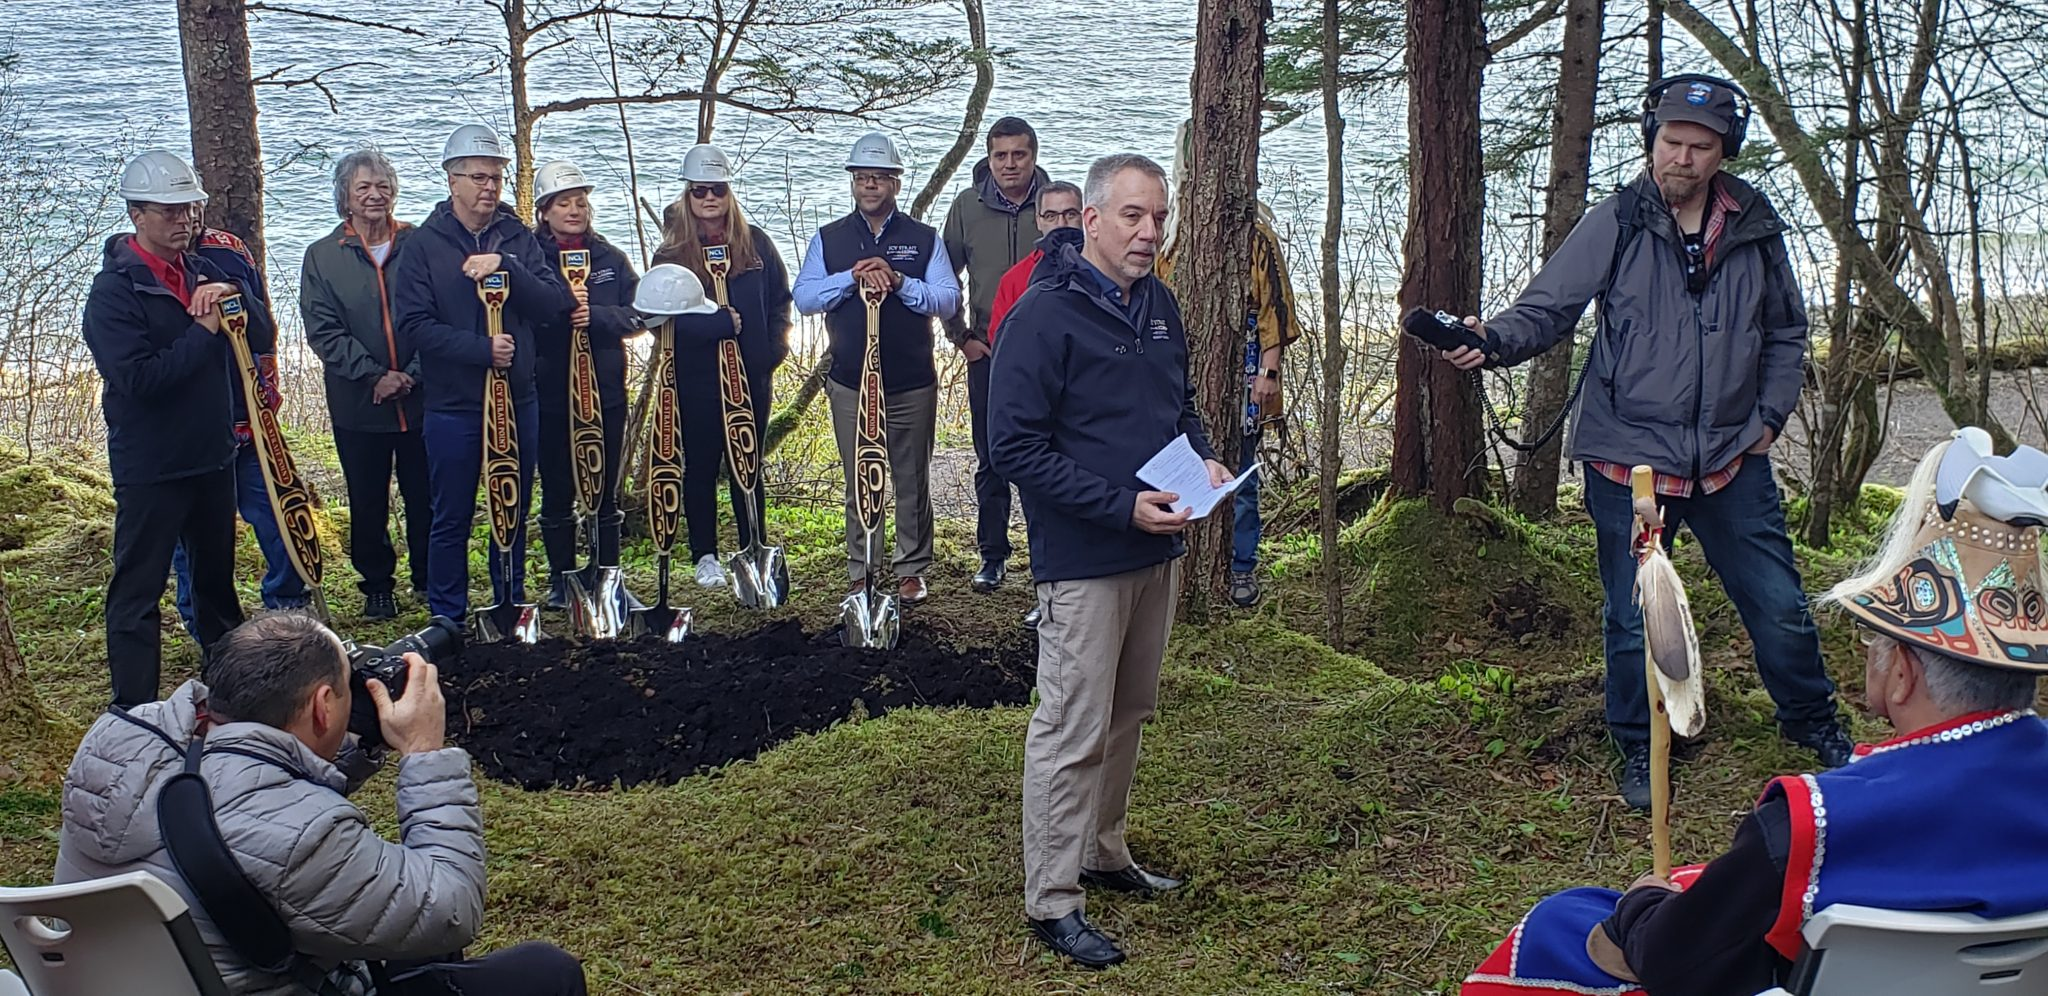 Norwegian, Huna Totem break ground on new pier at Icy Strait